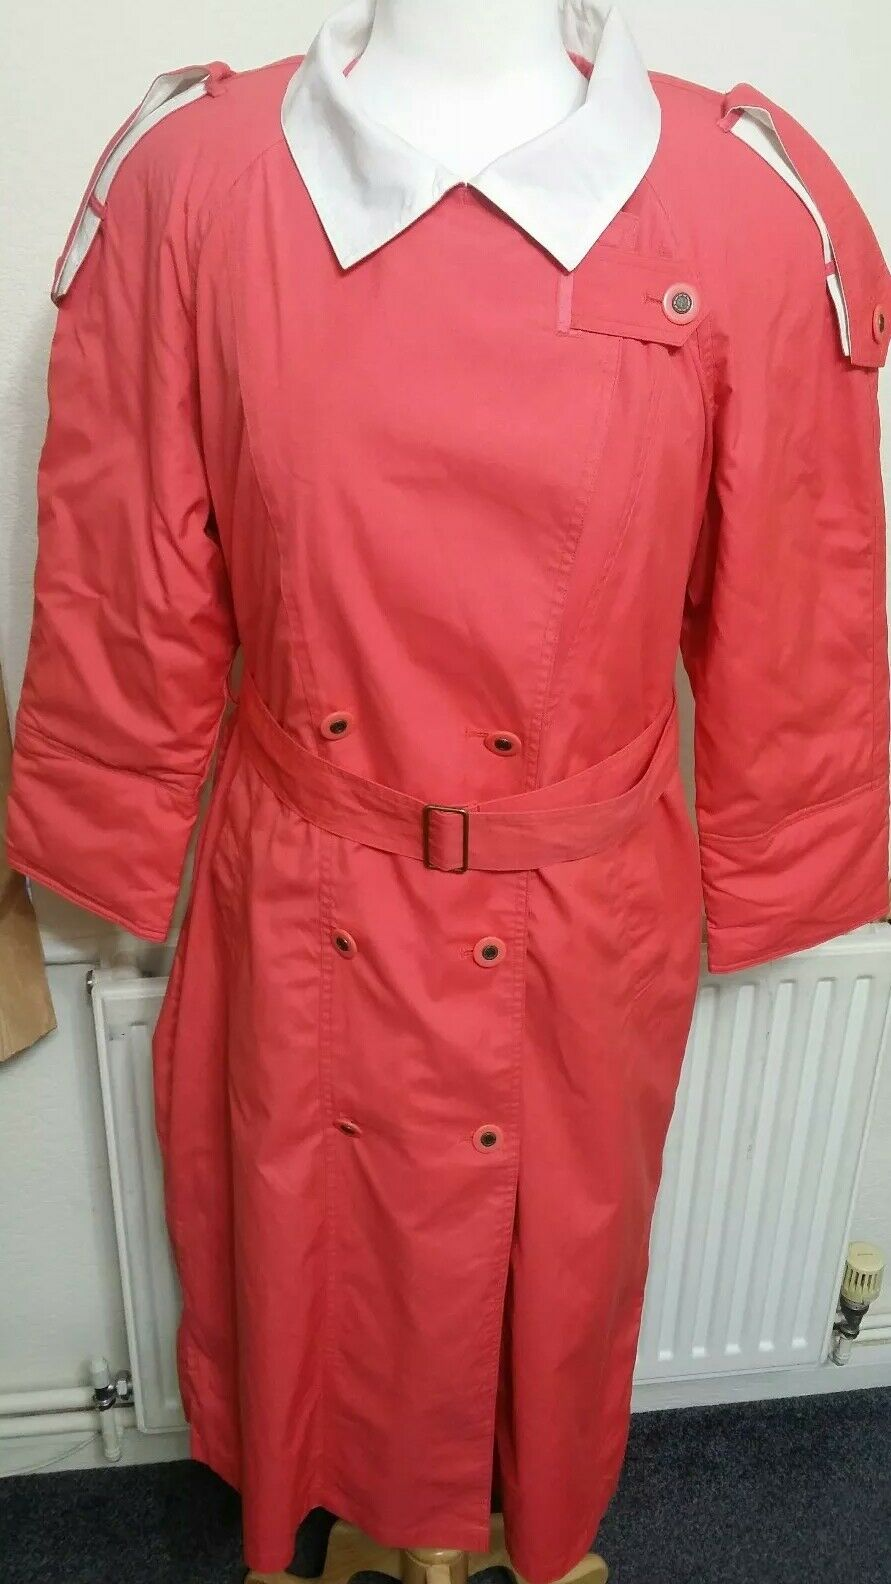 Vintage MISTY HARBOR Women Double Breasted Shoulder Padded Trench Coat pink Sz M